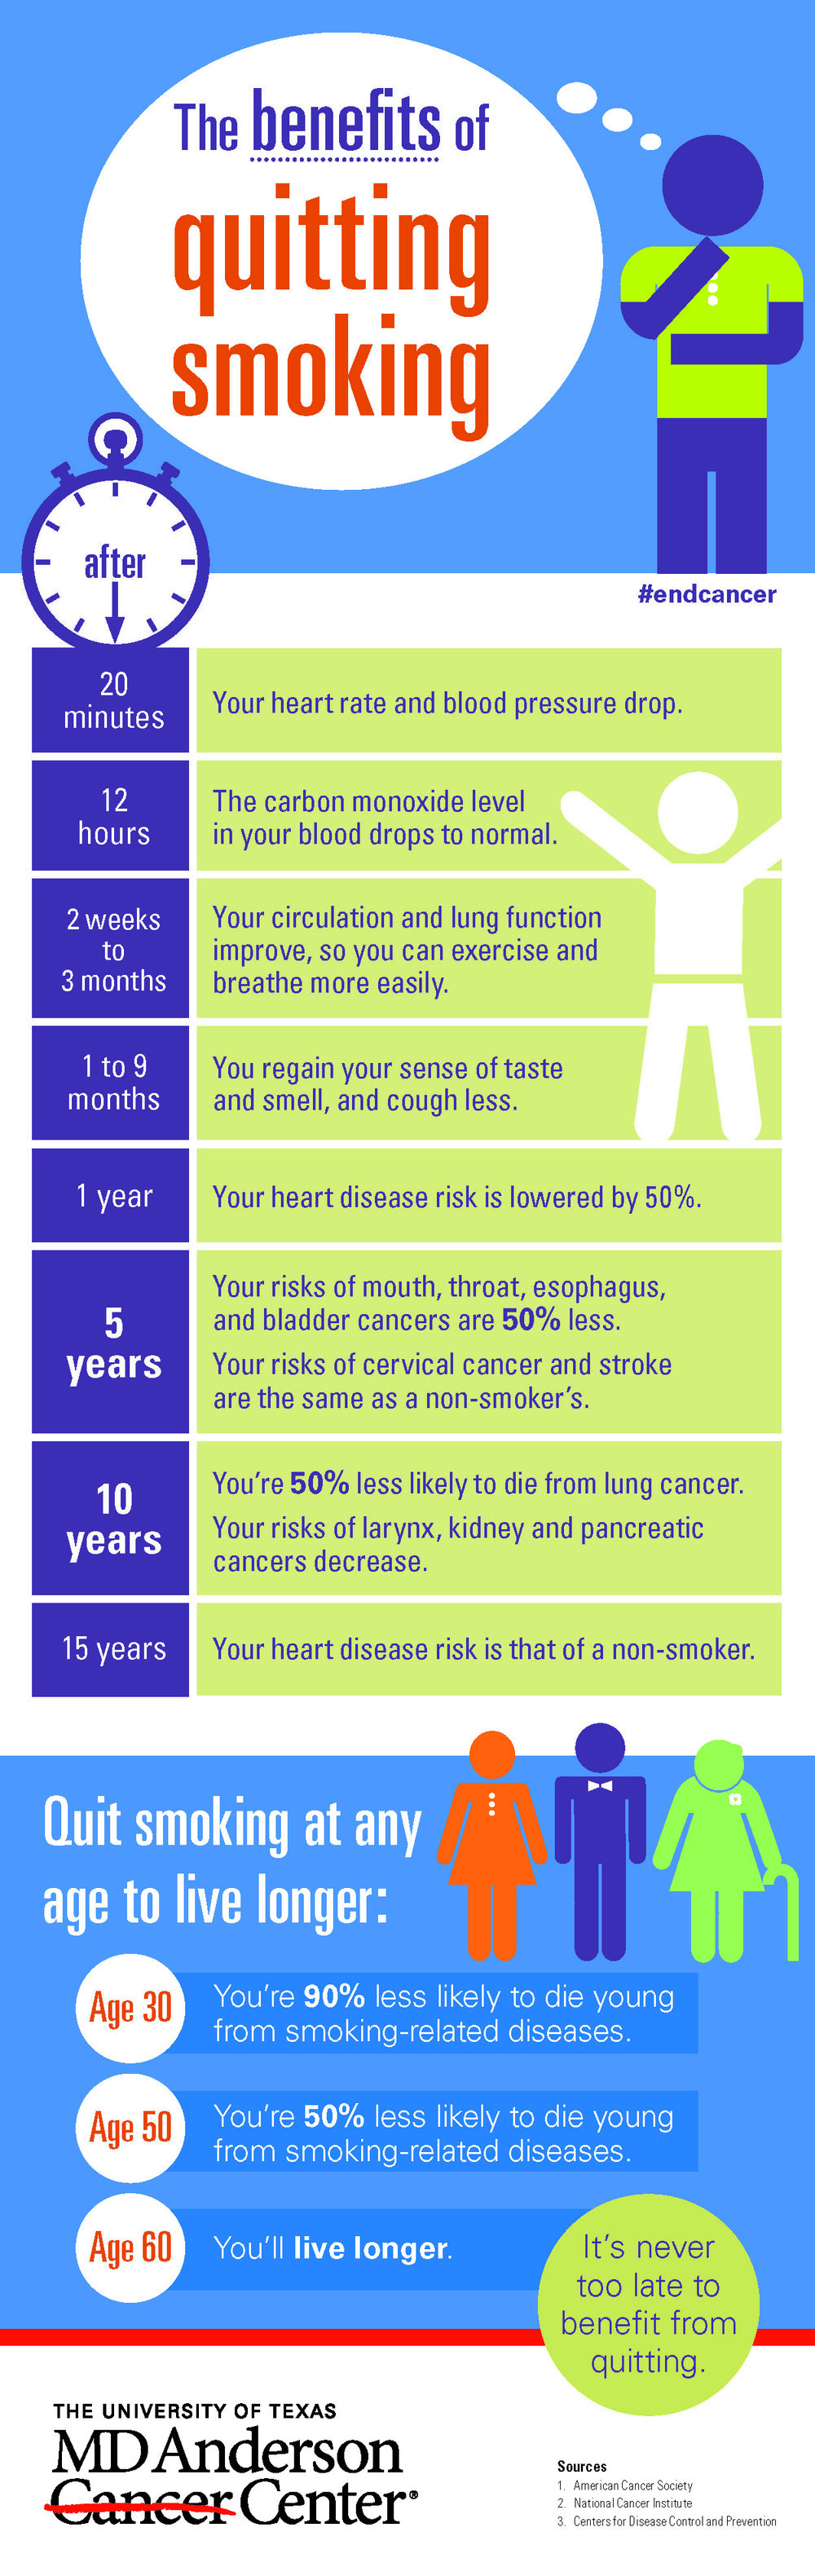 BenefitsQuittingSmoking_Infographic_FINAL.jpg